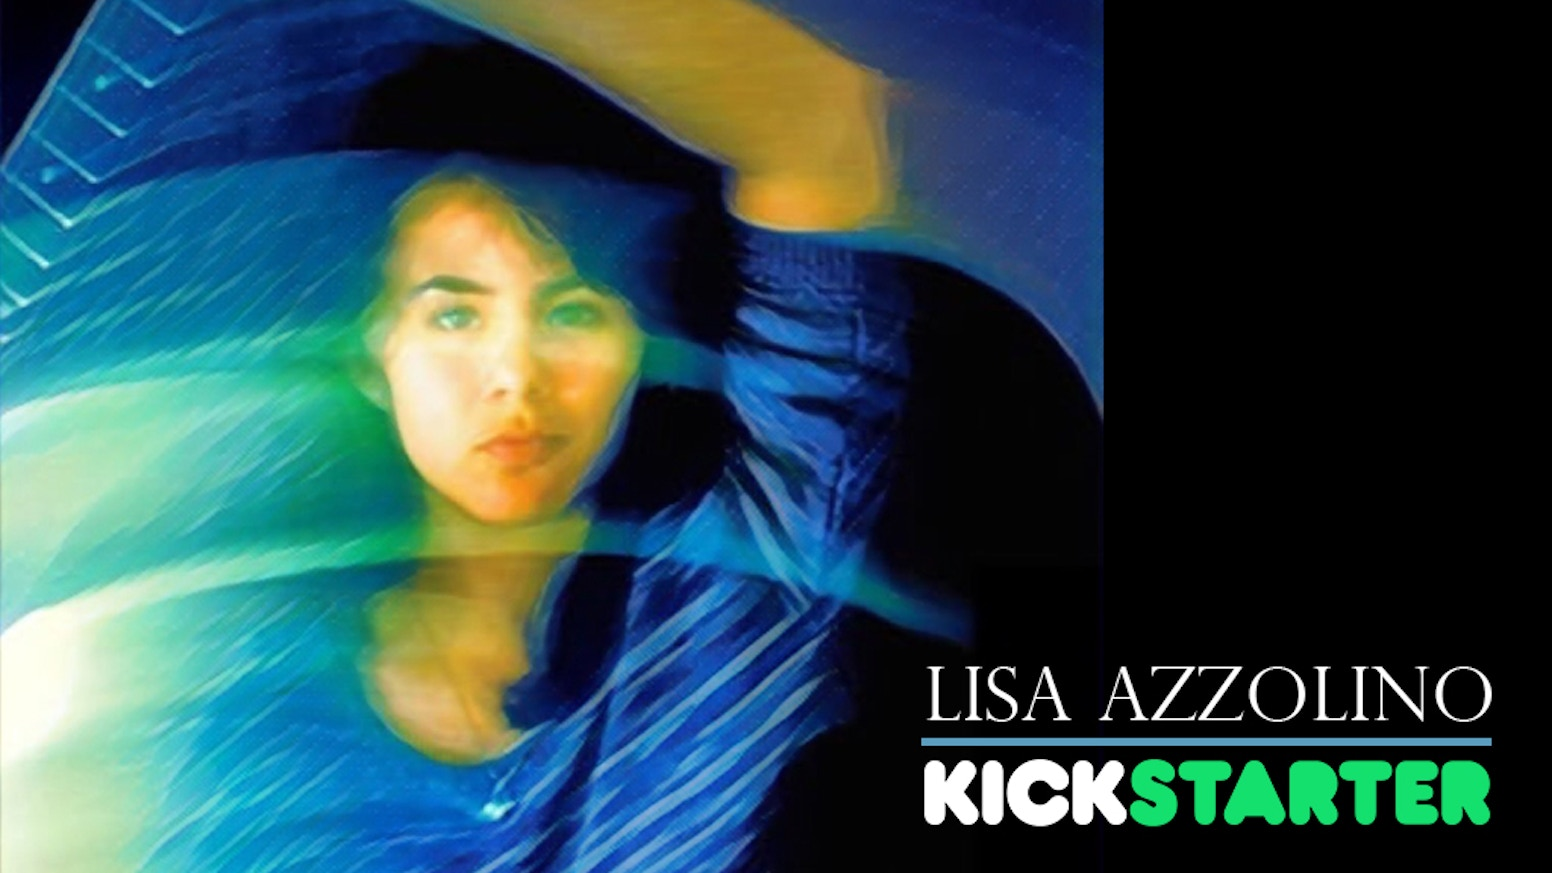 Lisa needs your help to raise $6K to fund her 5-song debut EP.